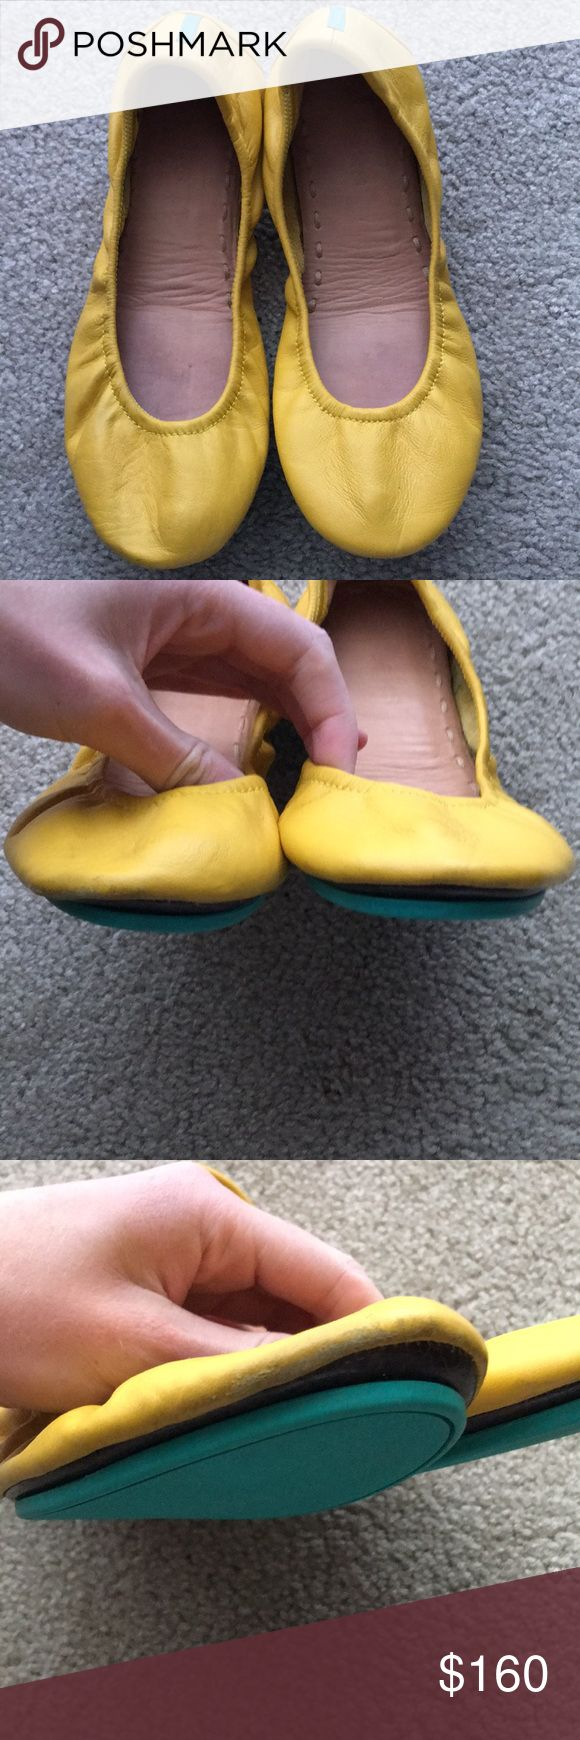 Tieks Mustard Yellow Ballet Flats size 7 Mustard Tieks in a size 7. These have been only worn a few times and only have minor scuffs to toes and heels. See photos. Tieks Shoes Flats & Loafers